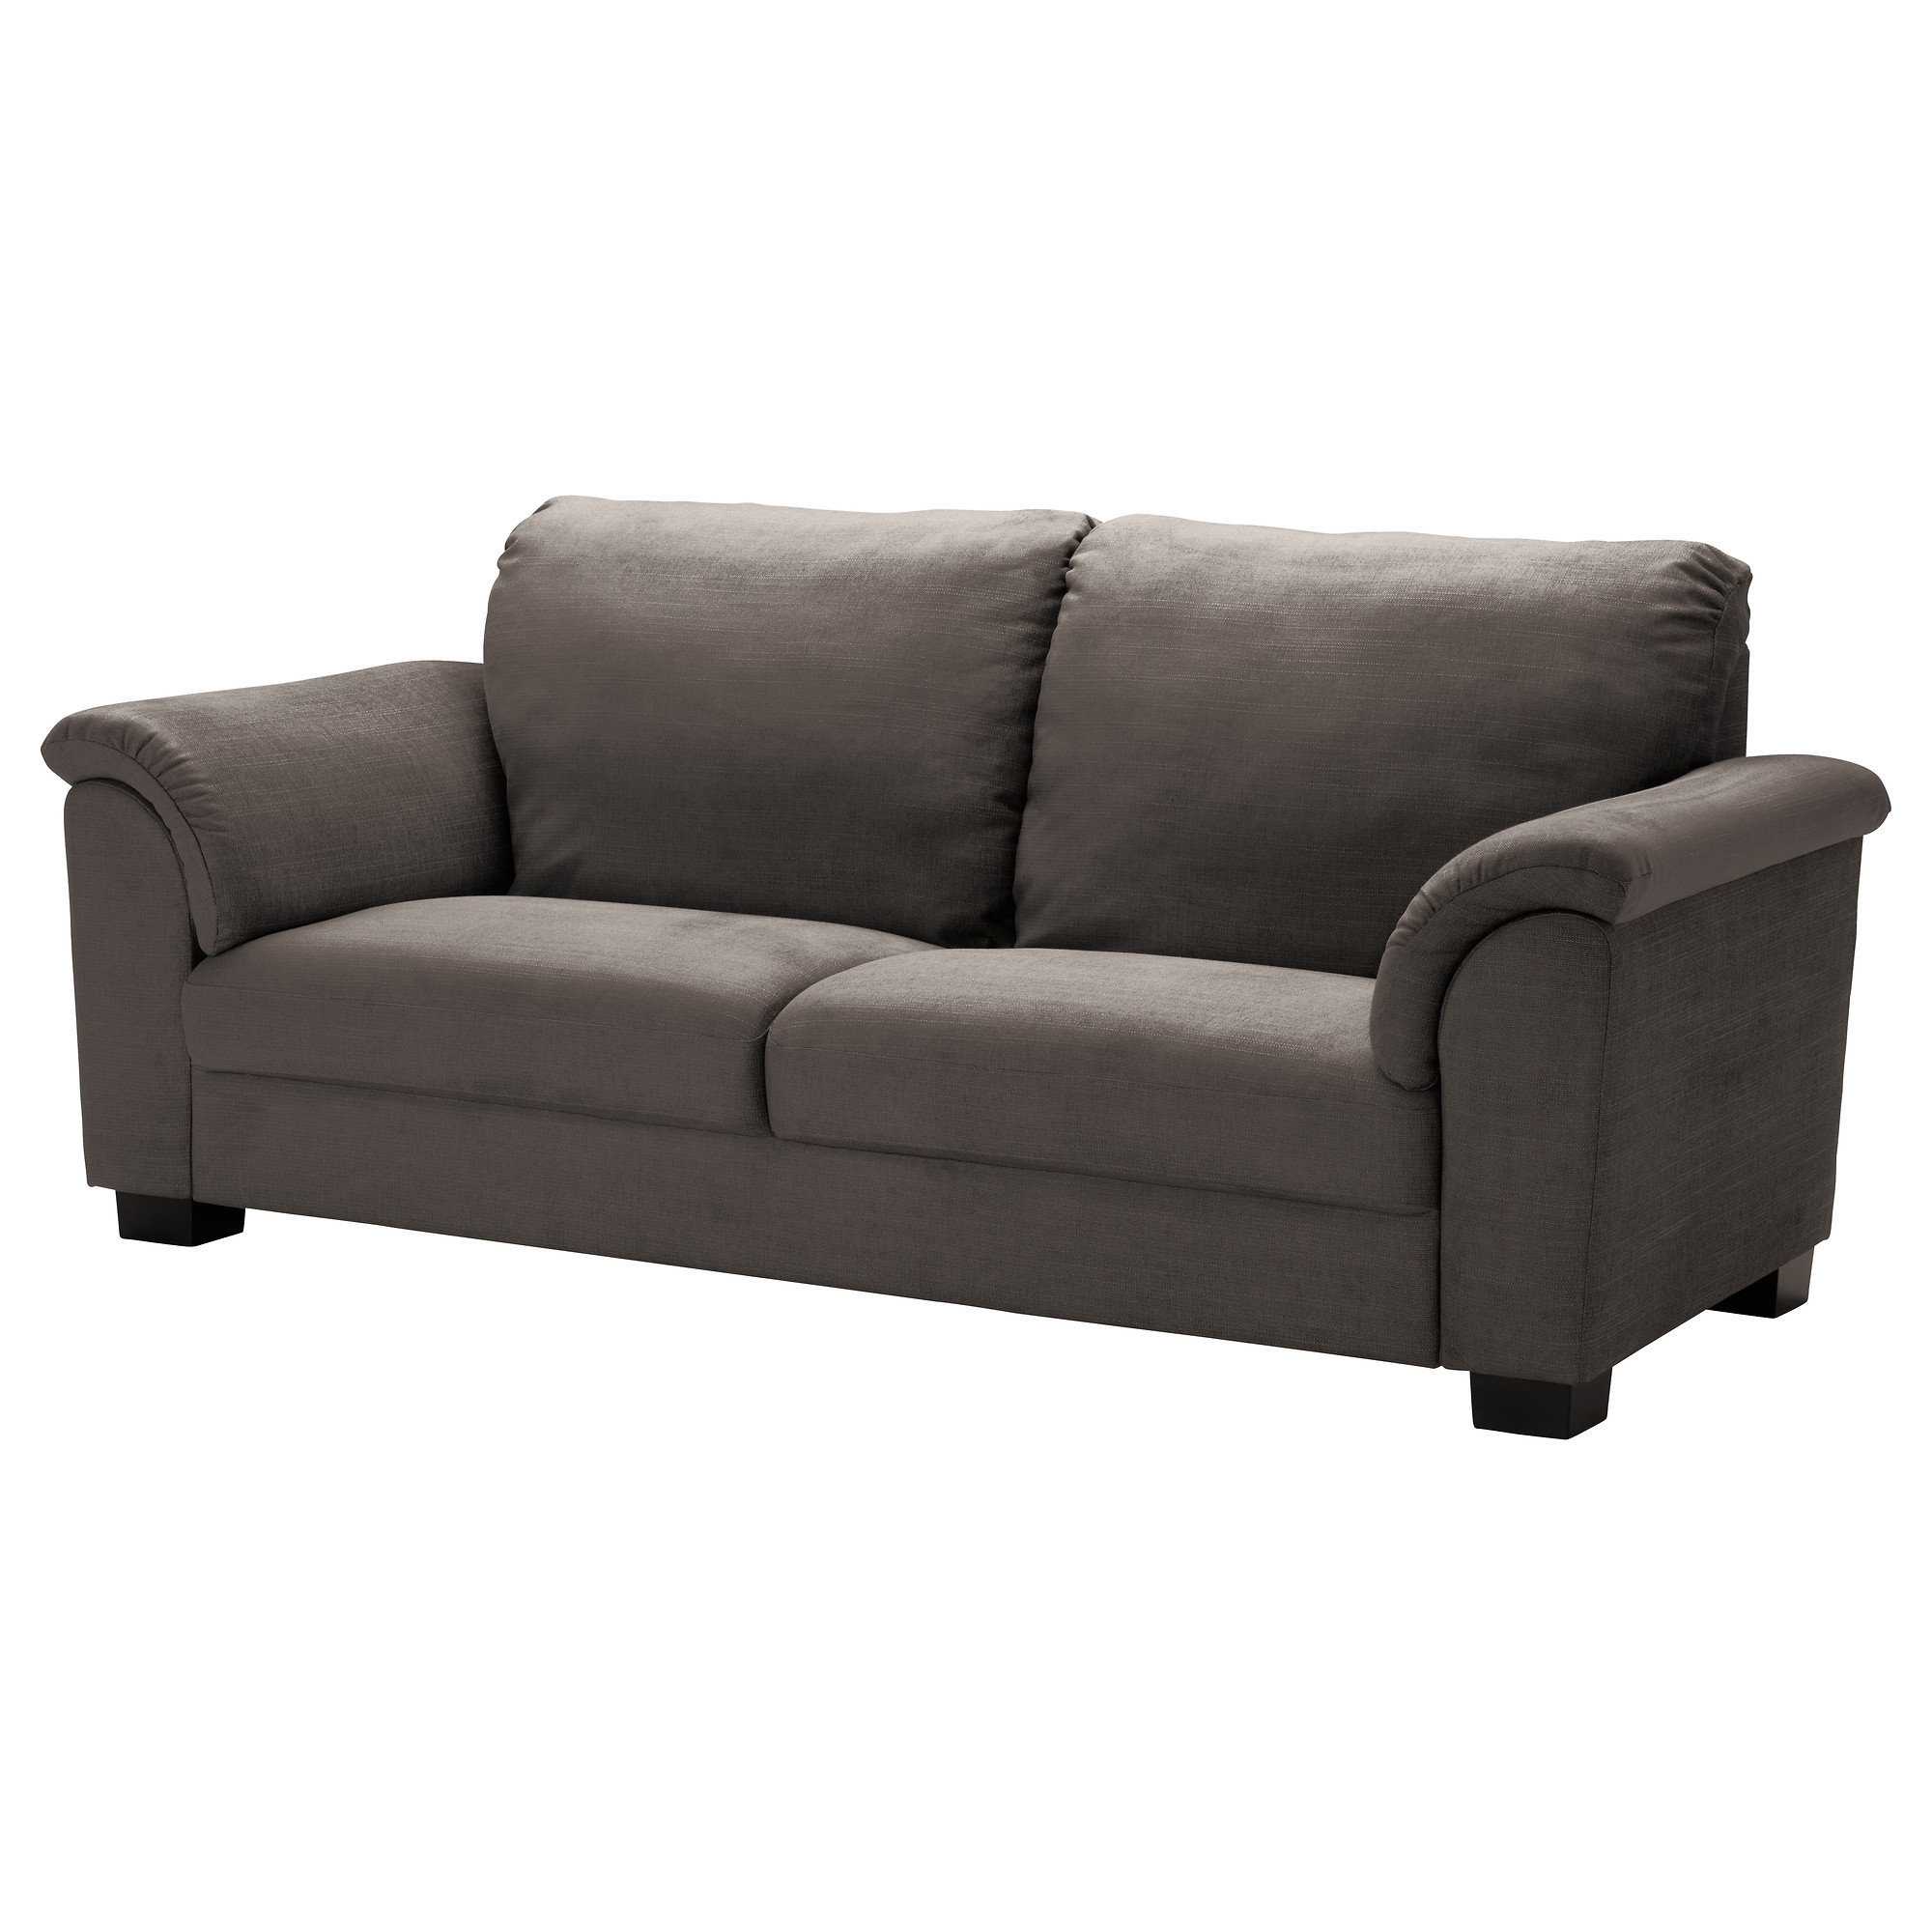 tidafors sofa tullinge gray brown from ikea